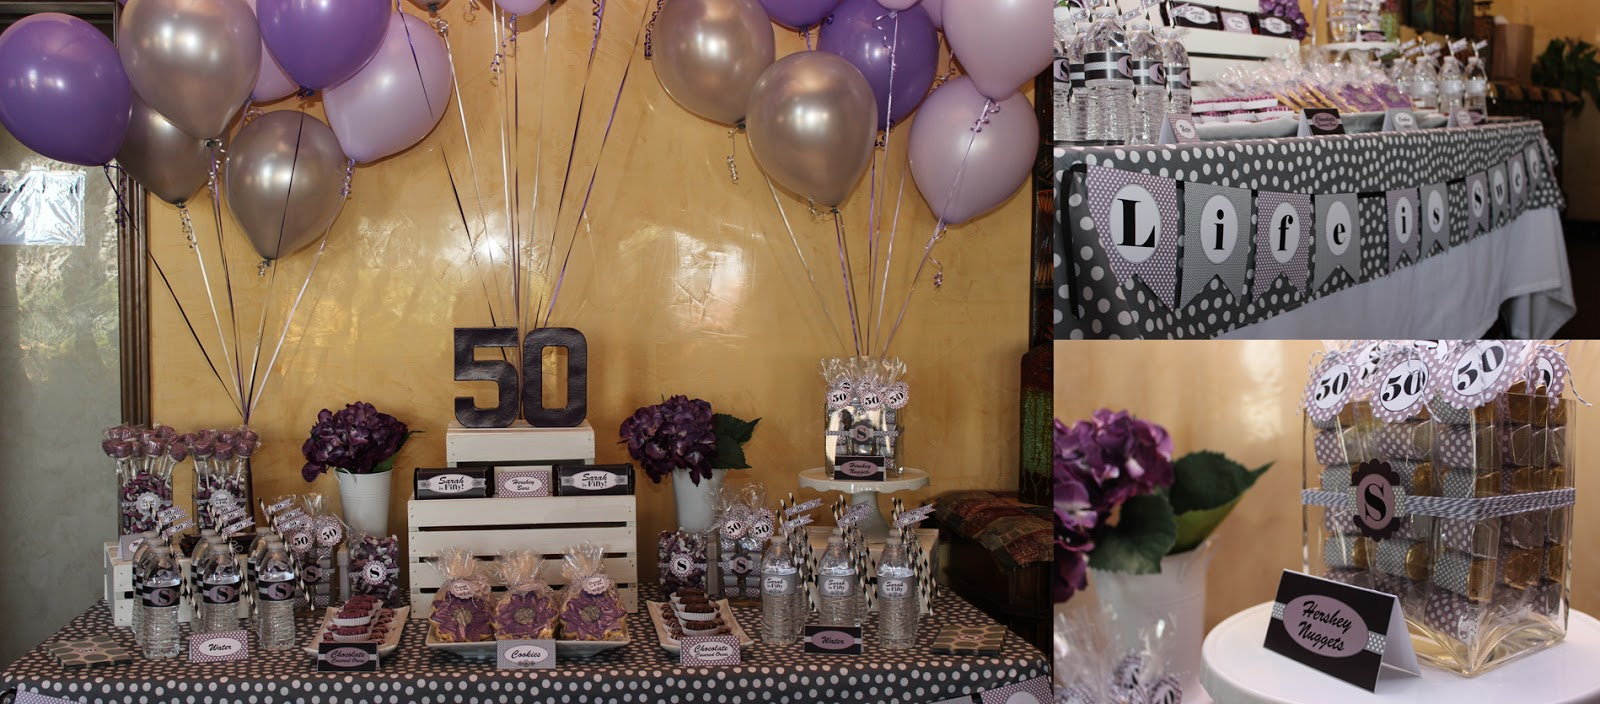 The sugar bee bungalow may 2013 for 50th birthday decoration ideas for women